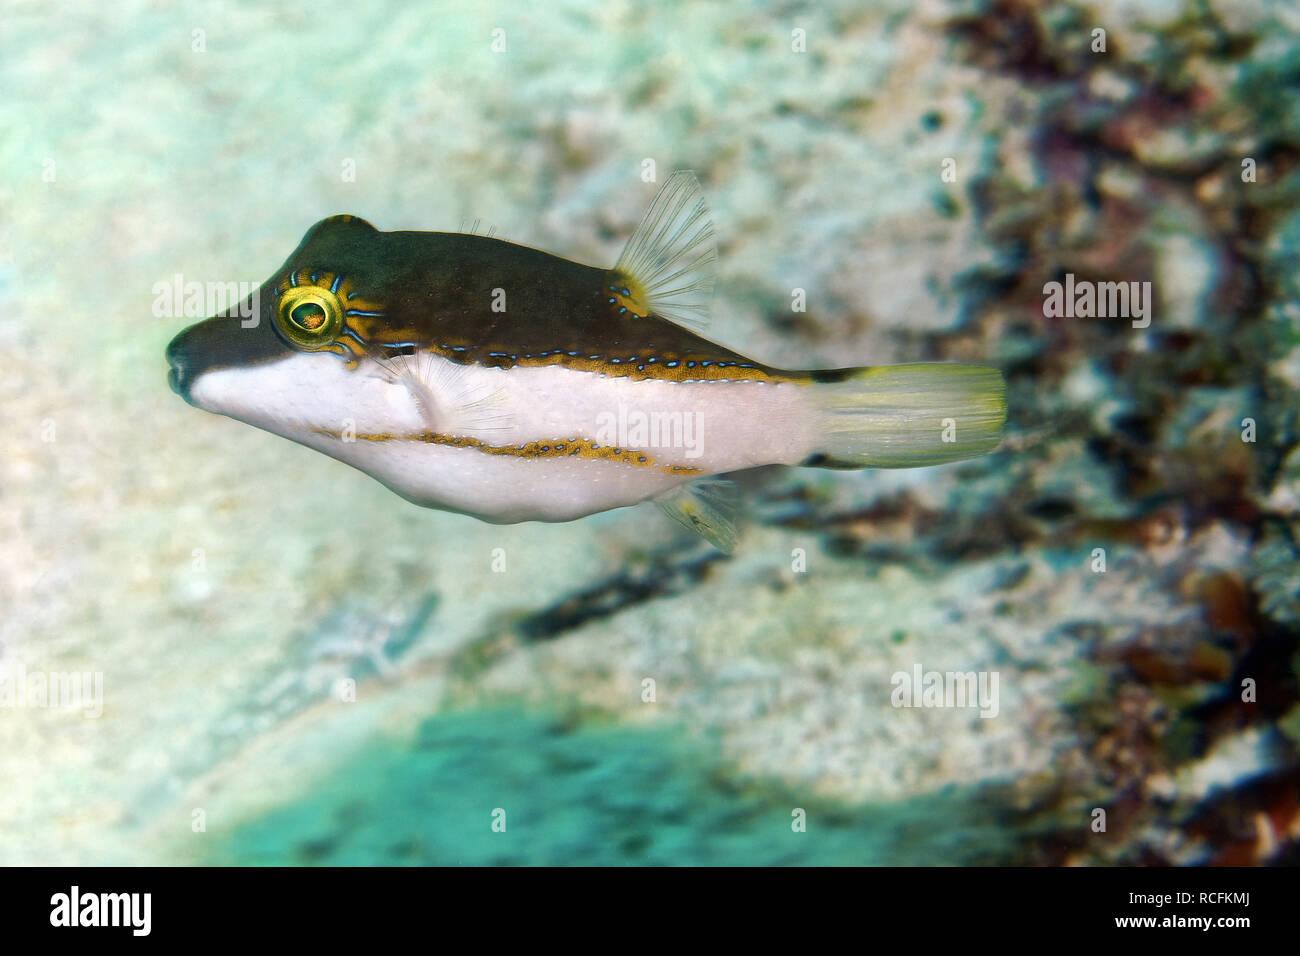 Bicolored toby - Canthigaster smithae Stock Photo